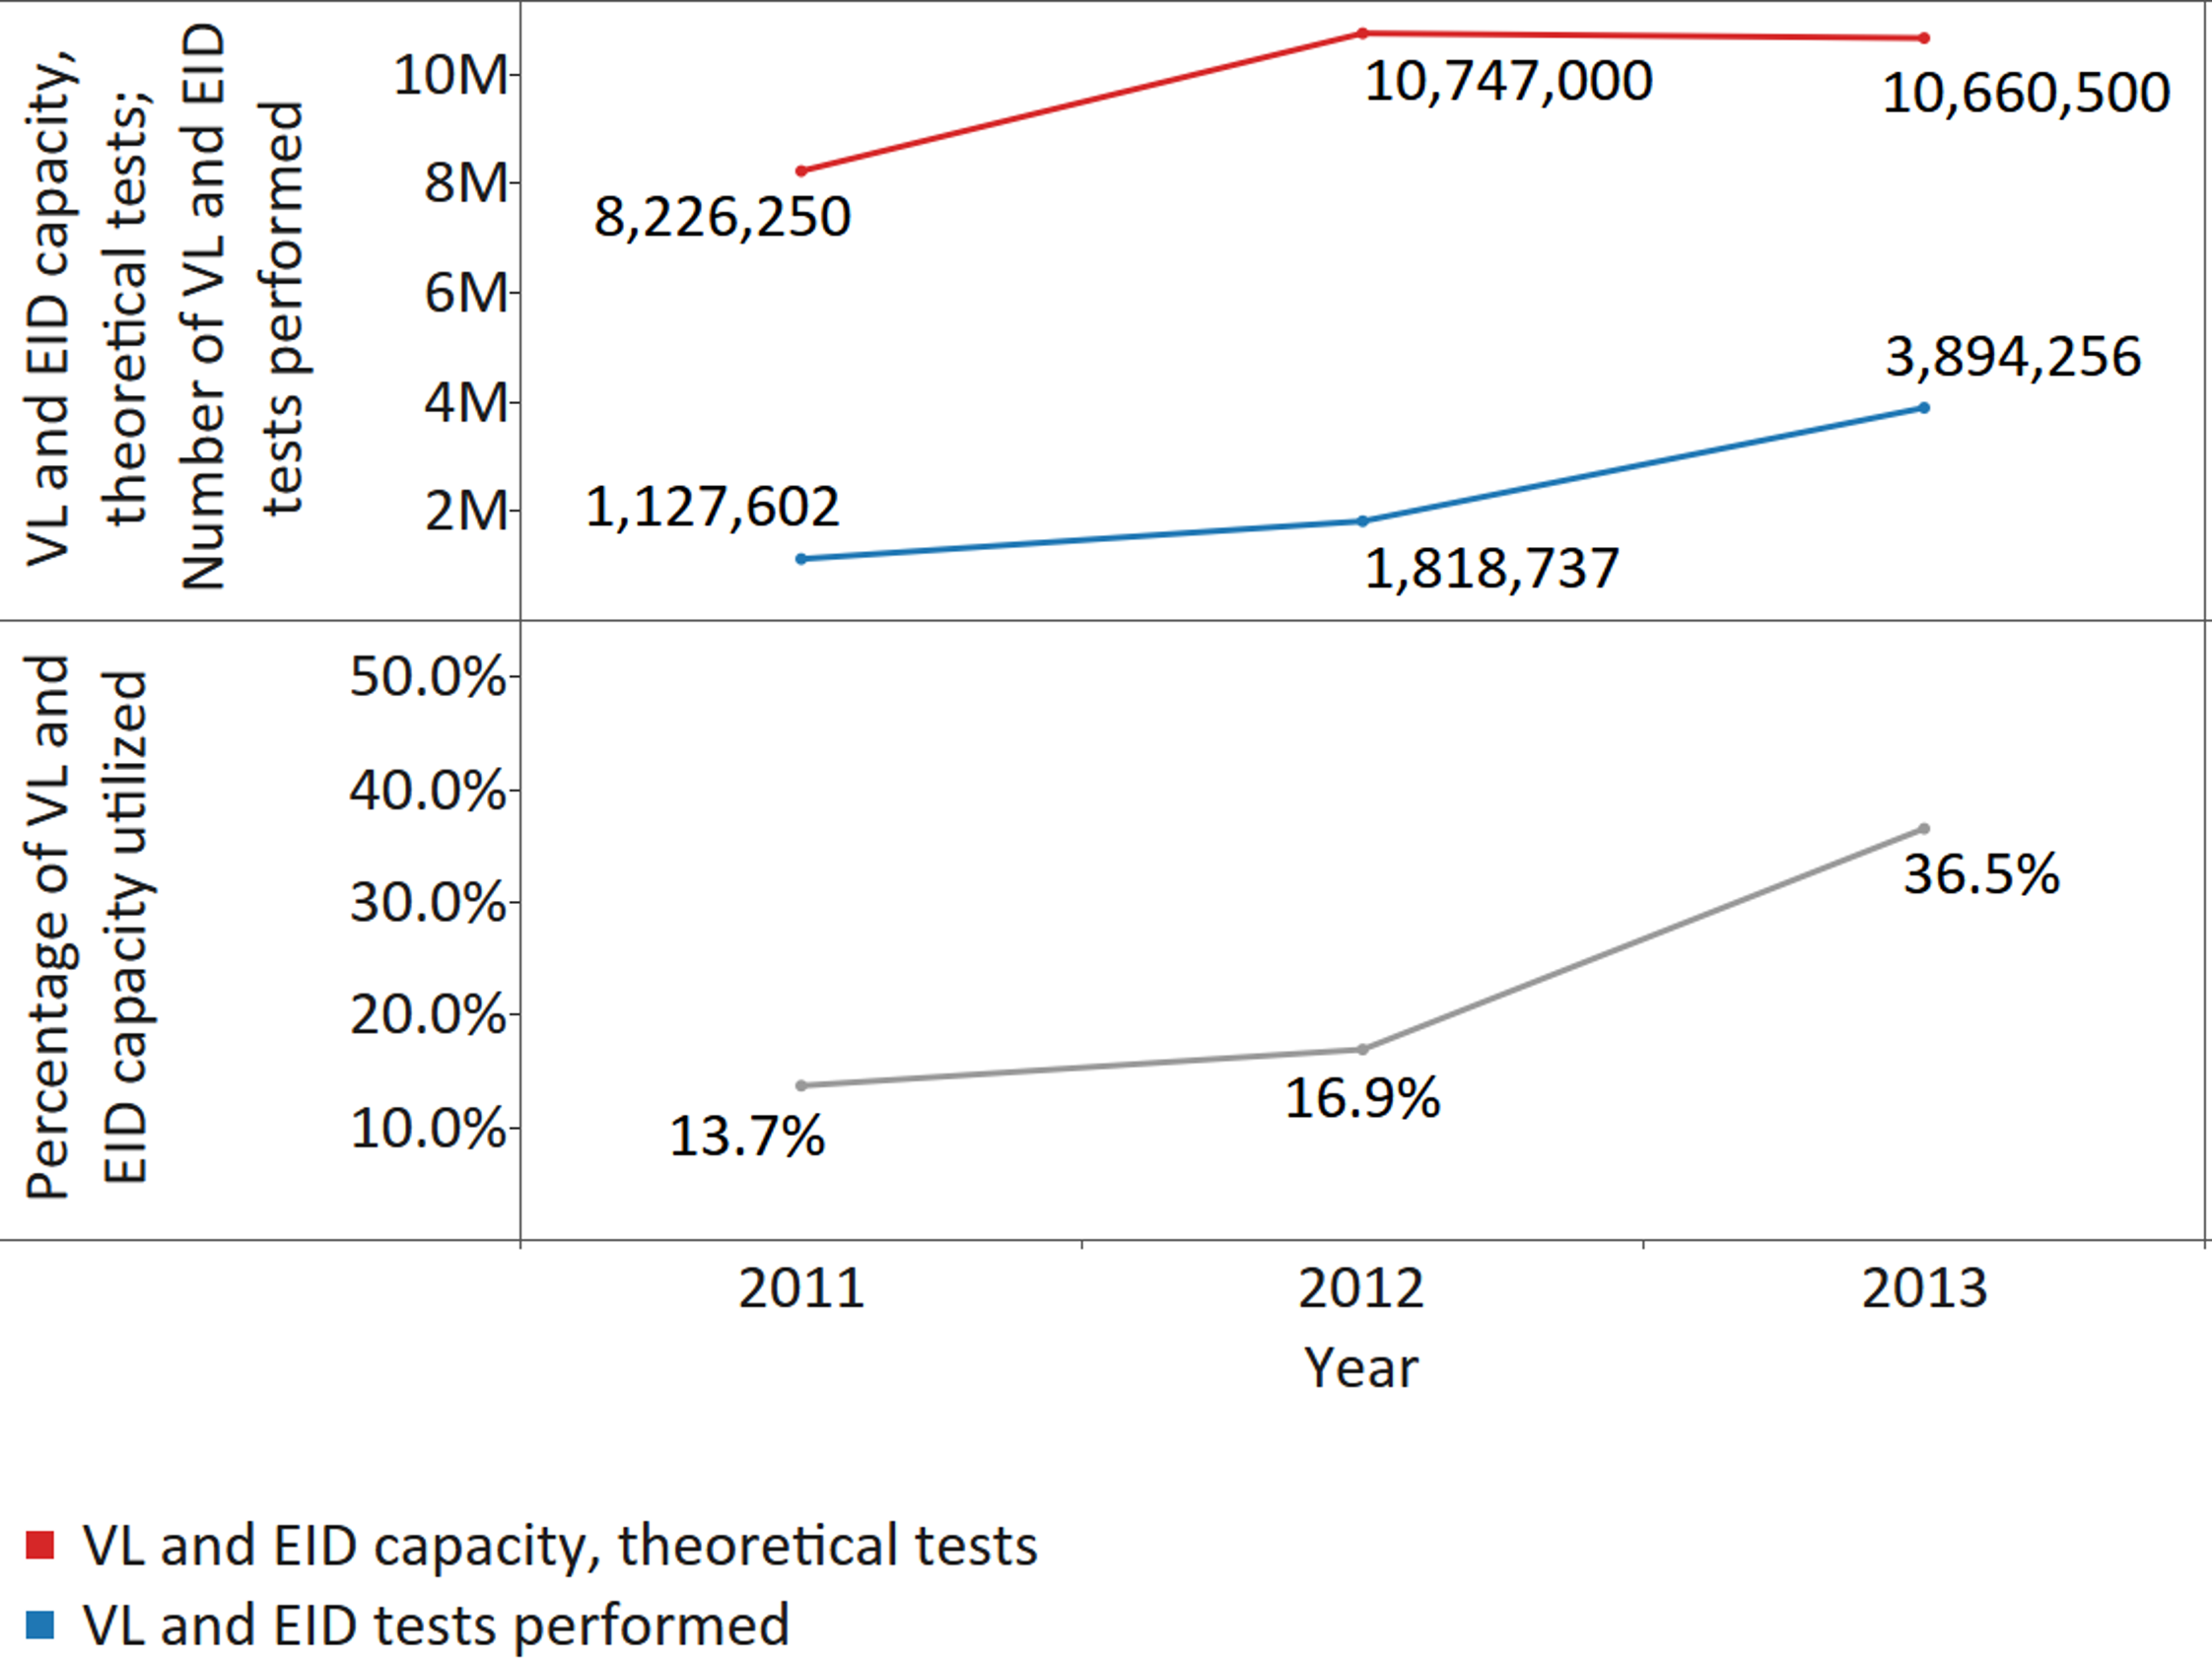 Utilization of viral load (VL)/early infant diagnosis (EID) capacity for all responding countries.